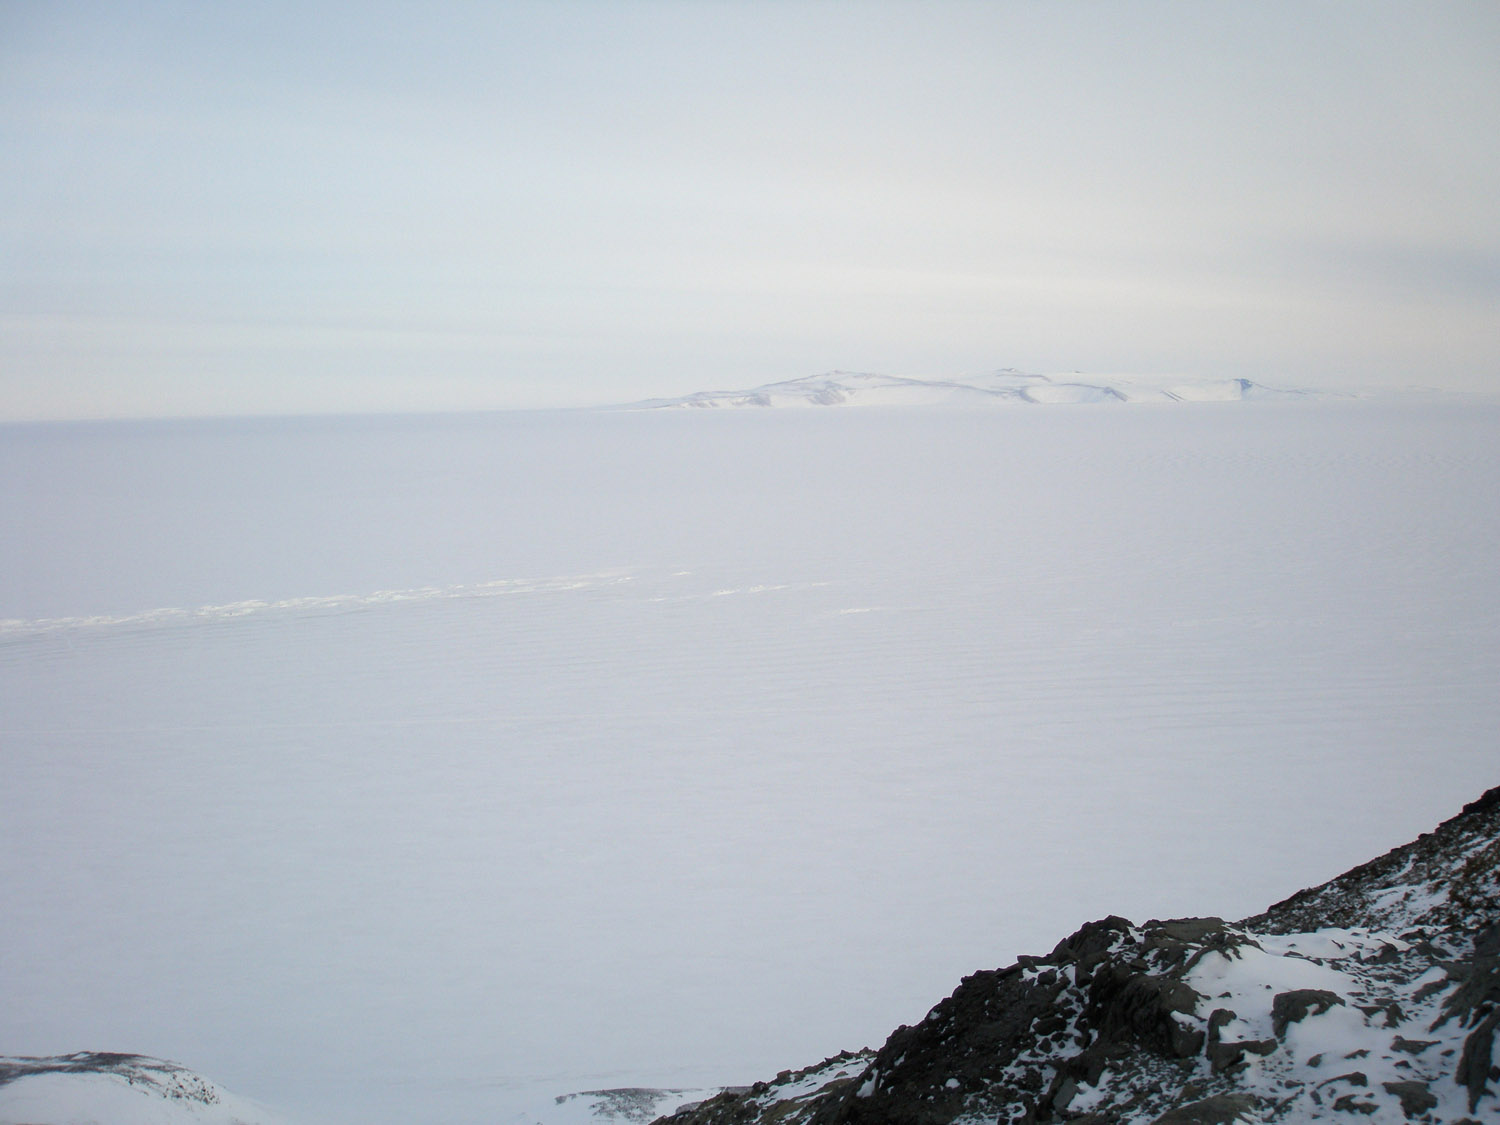 White Island from McMurdo